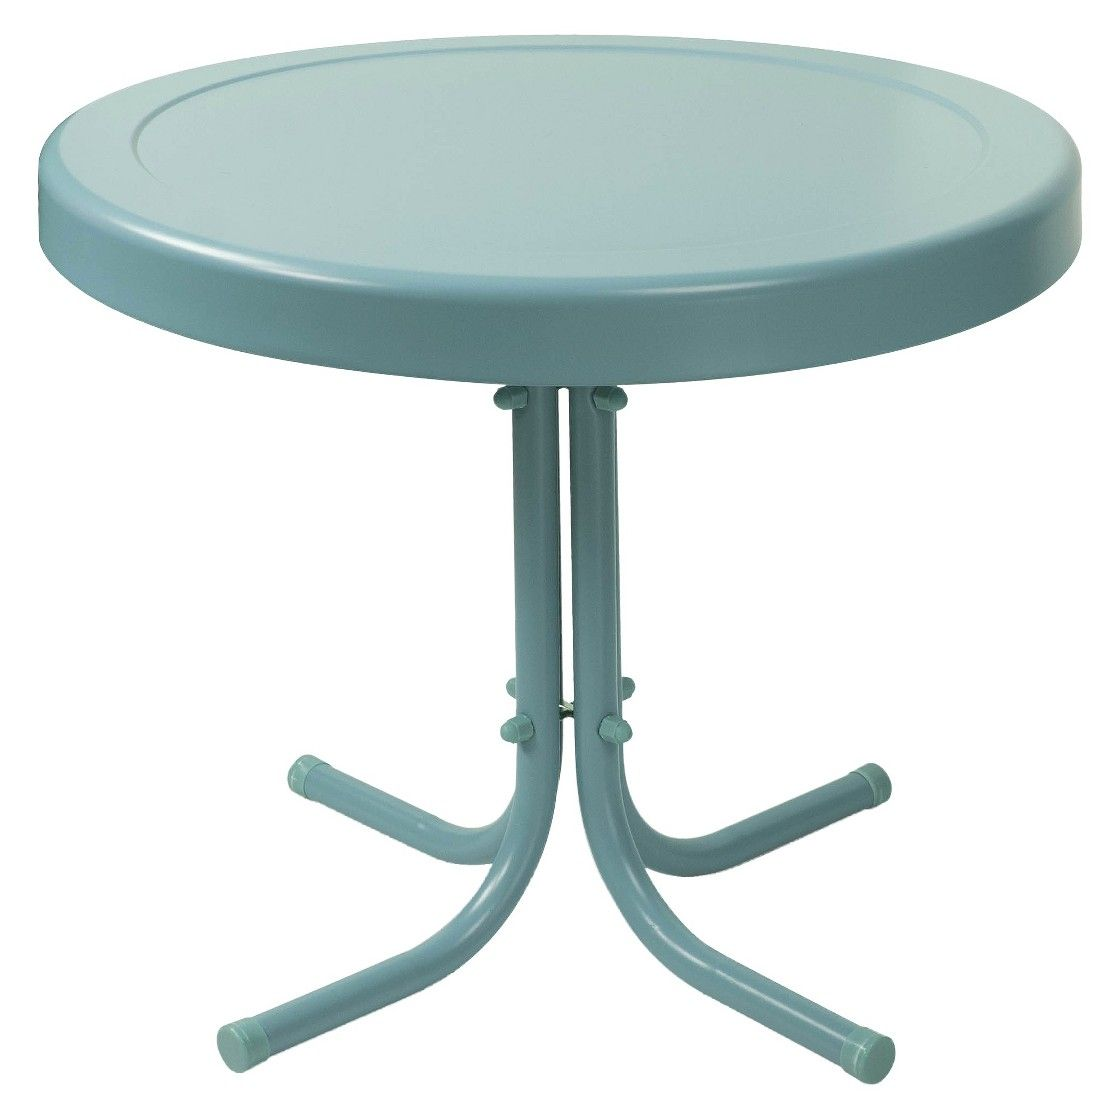 appealing metal patio side table crosley round furniture small red top canadian target tables retro vintage fascinating fisher glass wilson tire outdoor full size dining room